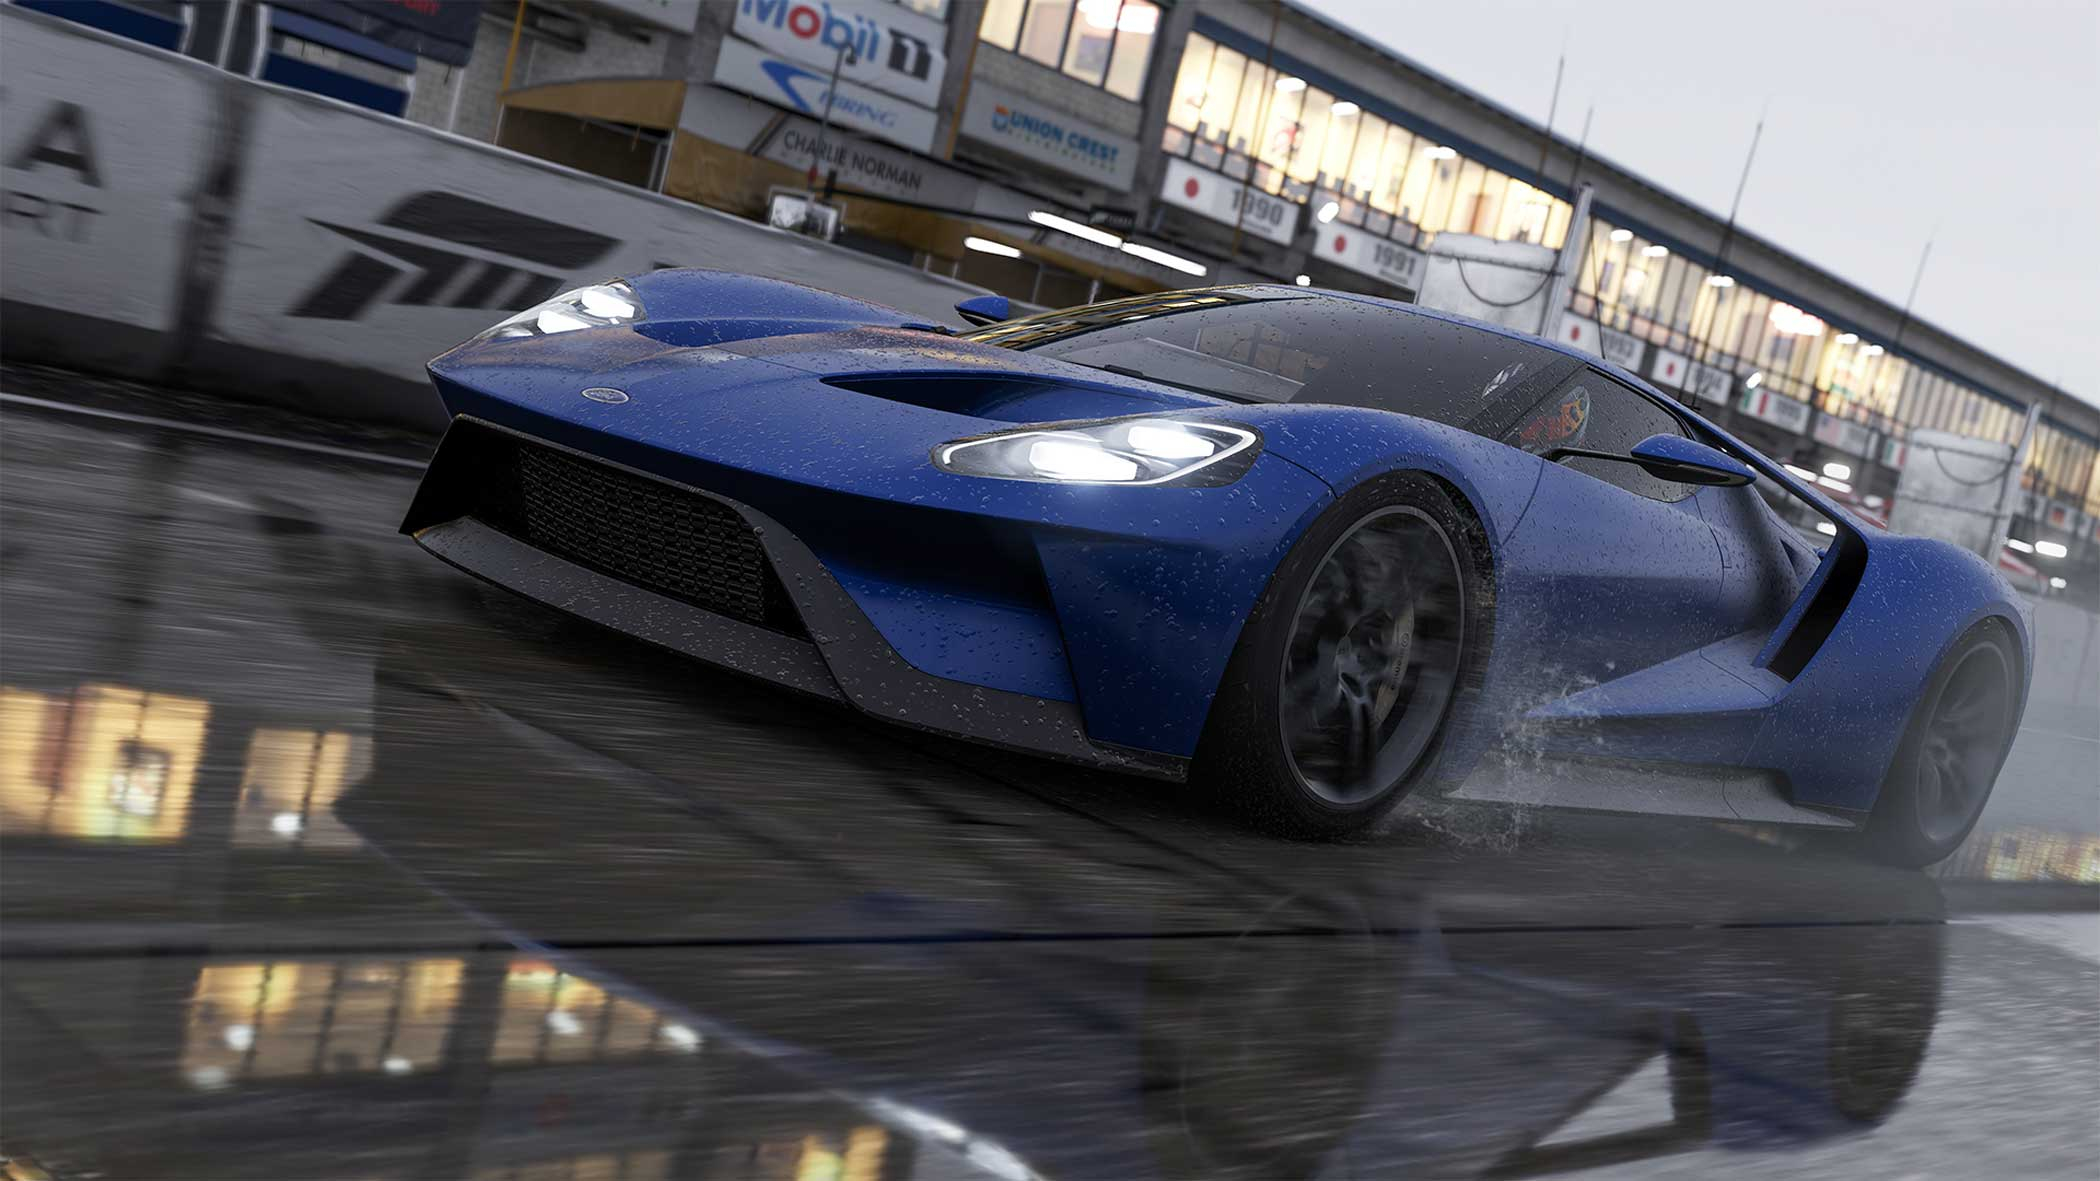 """<b>Forza Motorsport 6</b> Design Process:<i> """"The team did a fantastic job of creating wet-weather conditions in stunning realism, highlighting the danger and intensity at the heart of racing in the rain. In our recreation of rain, players struggle for traction and tires aquaplane across fully-simulated and accurately-placed puddles.""""</i> - Turn 10 Studios"""